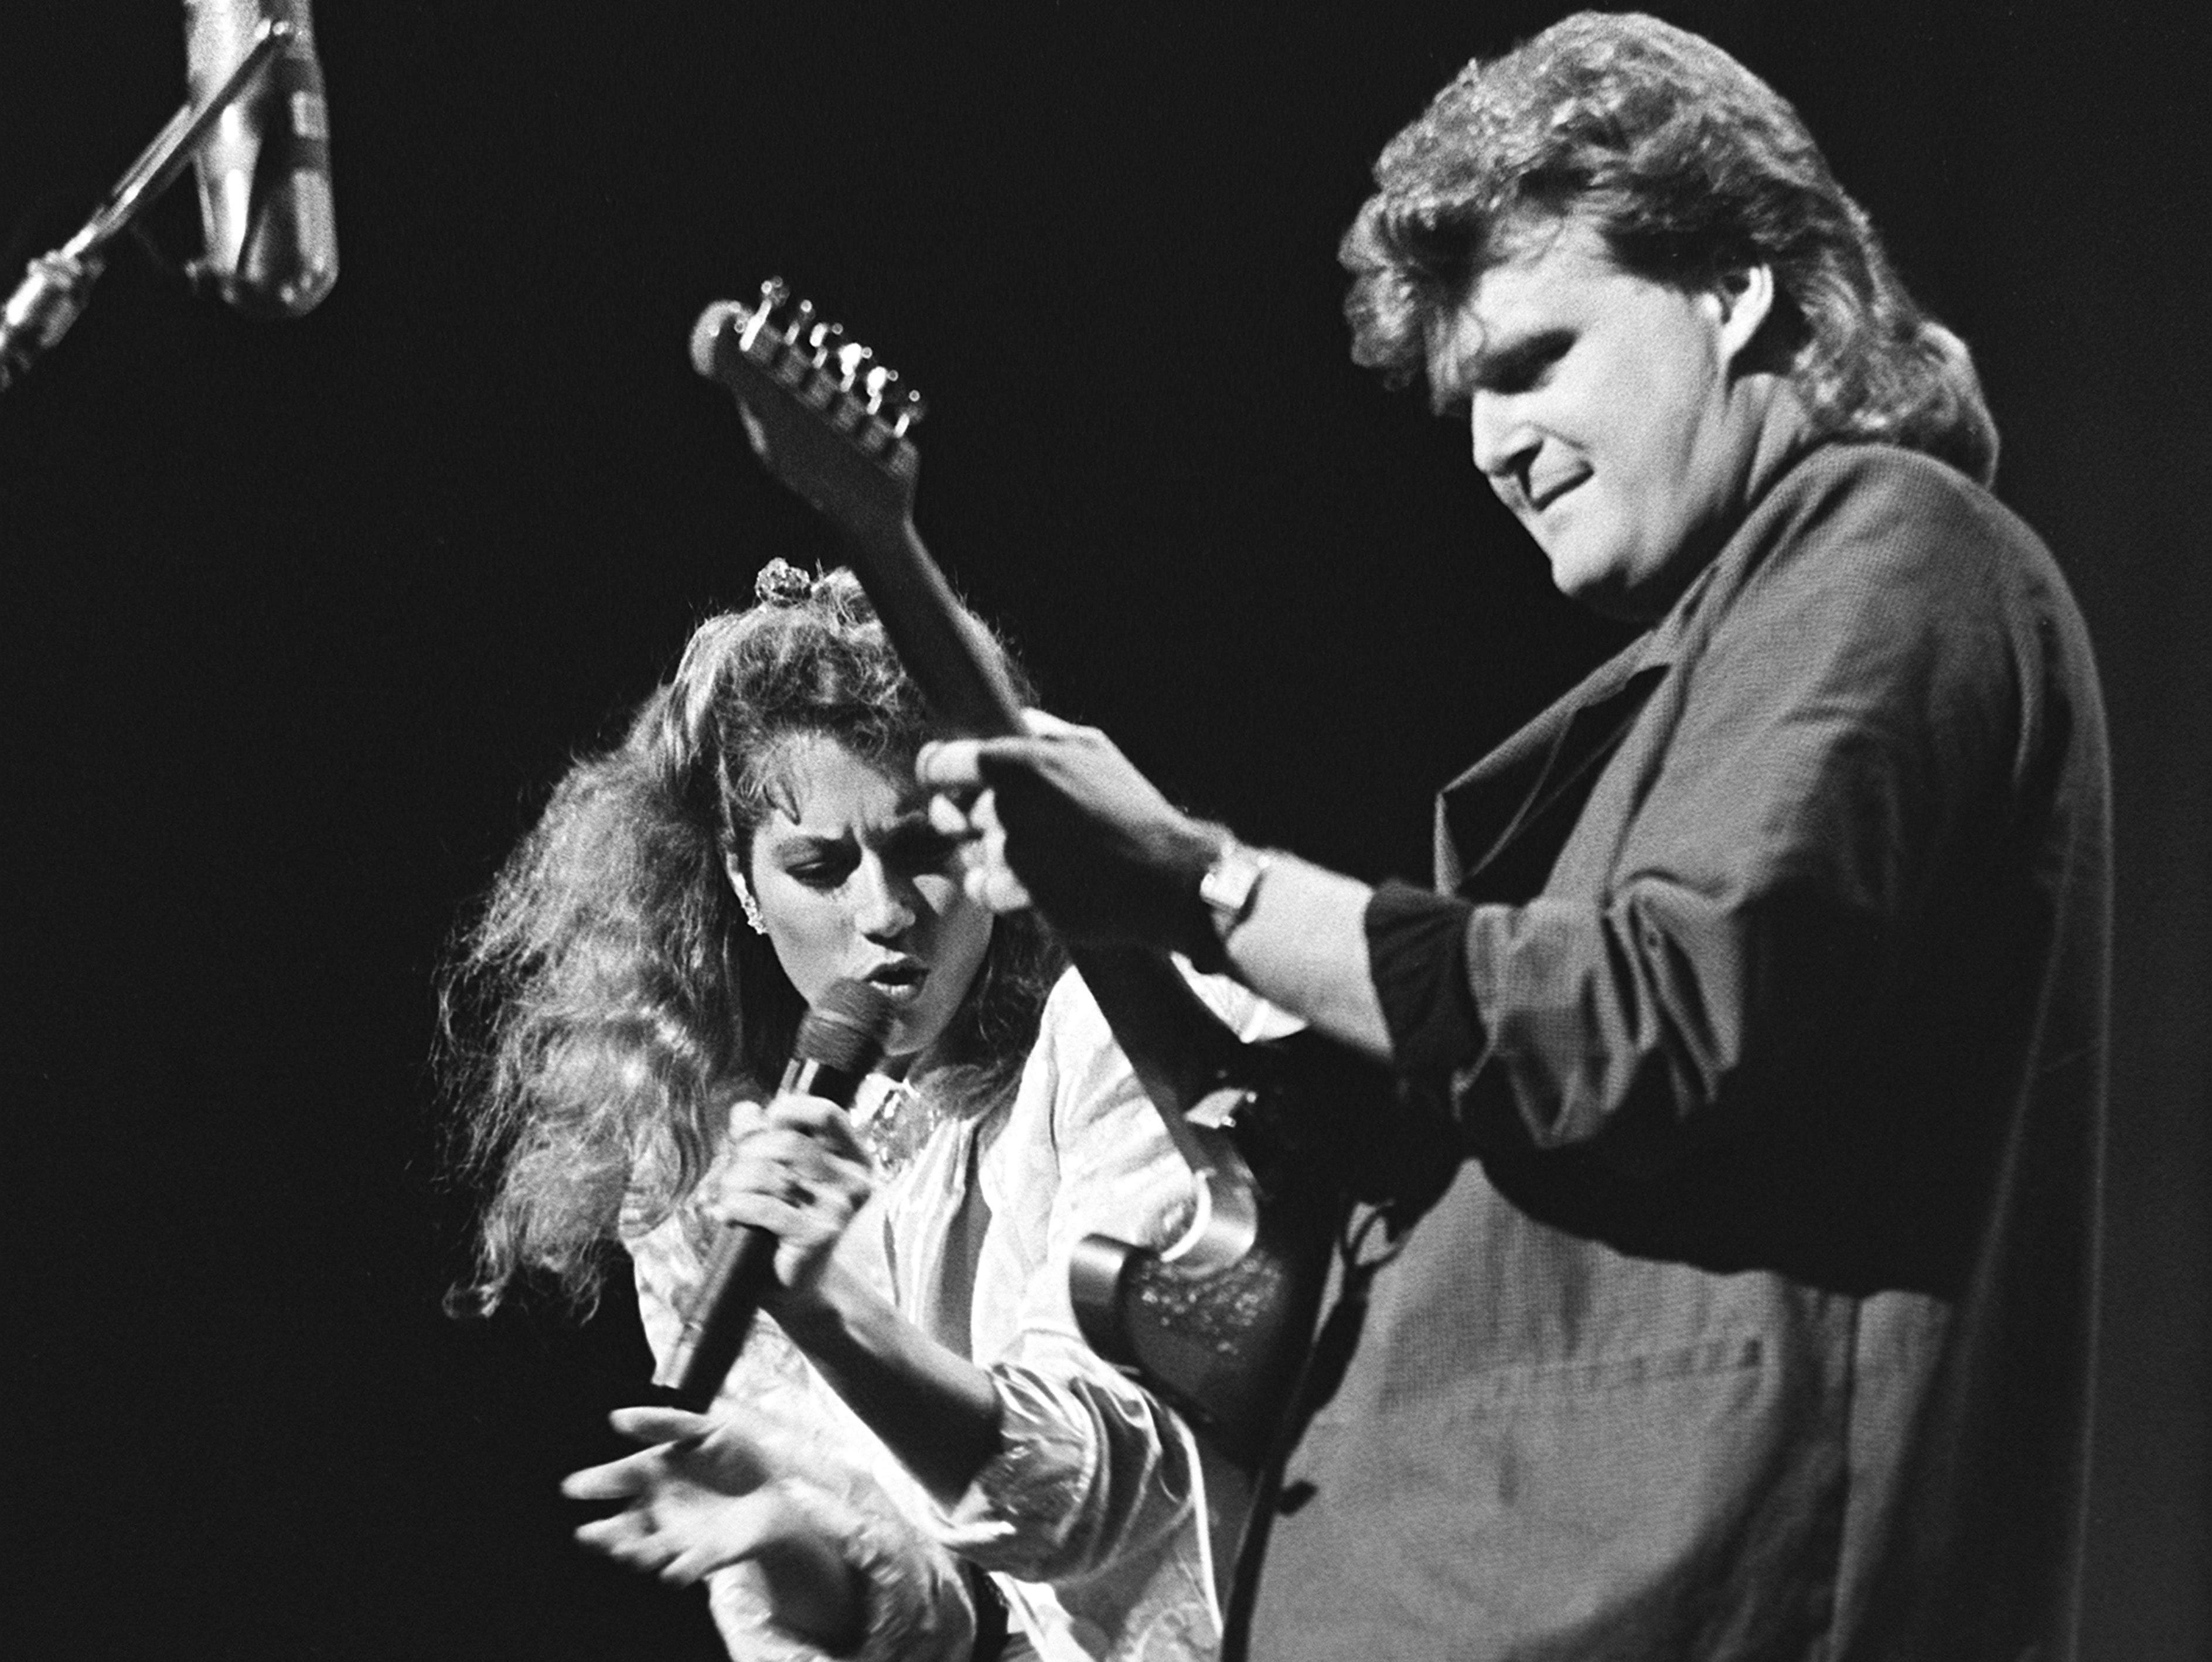 Amy Grant joins Ricky Skaggs during the CMA Awards show at the Grand Ole Opry House in 1986.